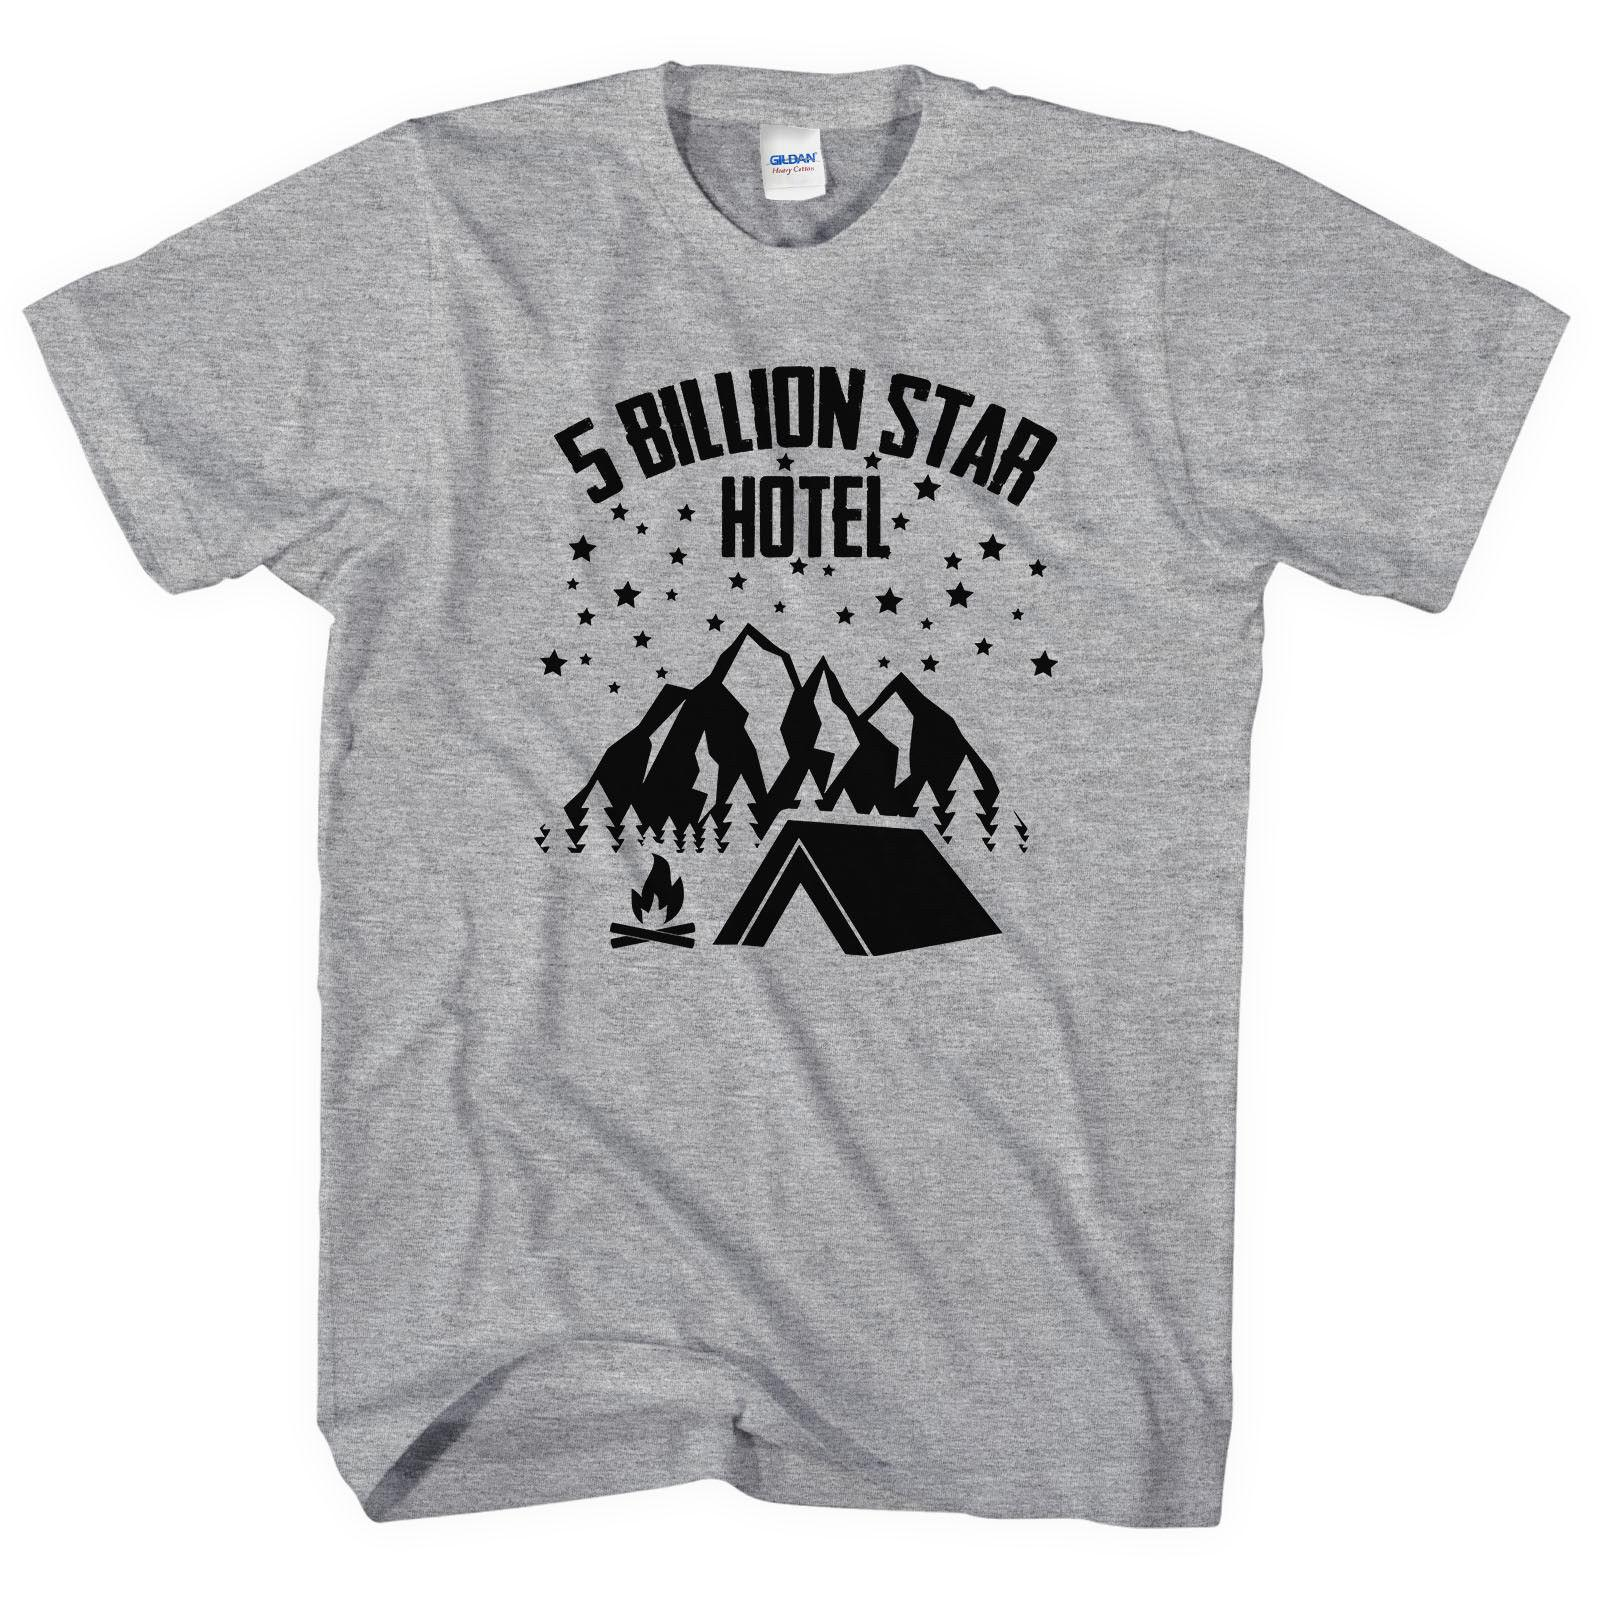 fb305875a Camping T Shirt 5 Billion Star Hotel Scout Camp Summer Men Women Kid Tshirt  L230 2018 Short Sleeve O Neck 100% Cotton Print Mens Summer Shirts With  Design ...